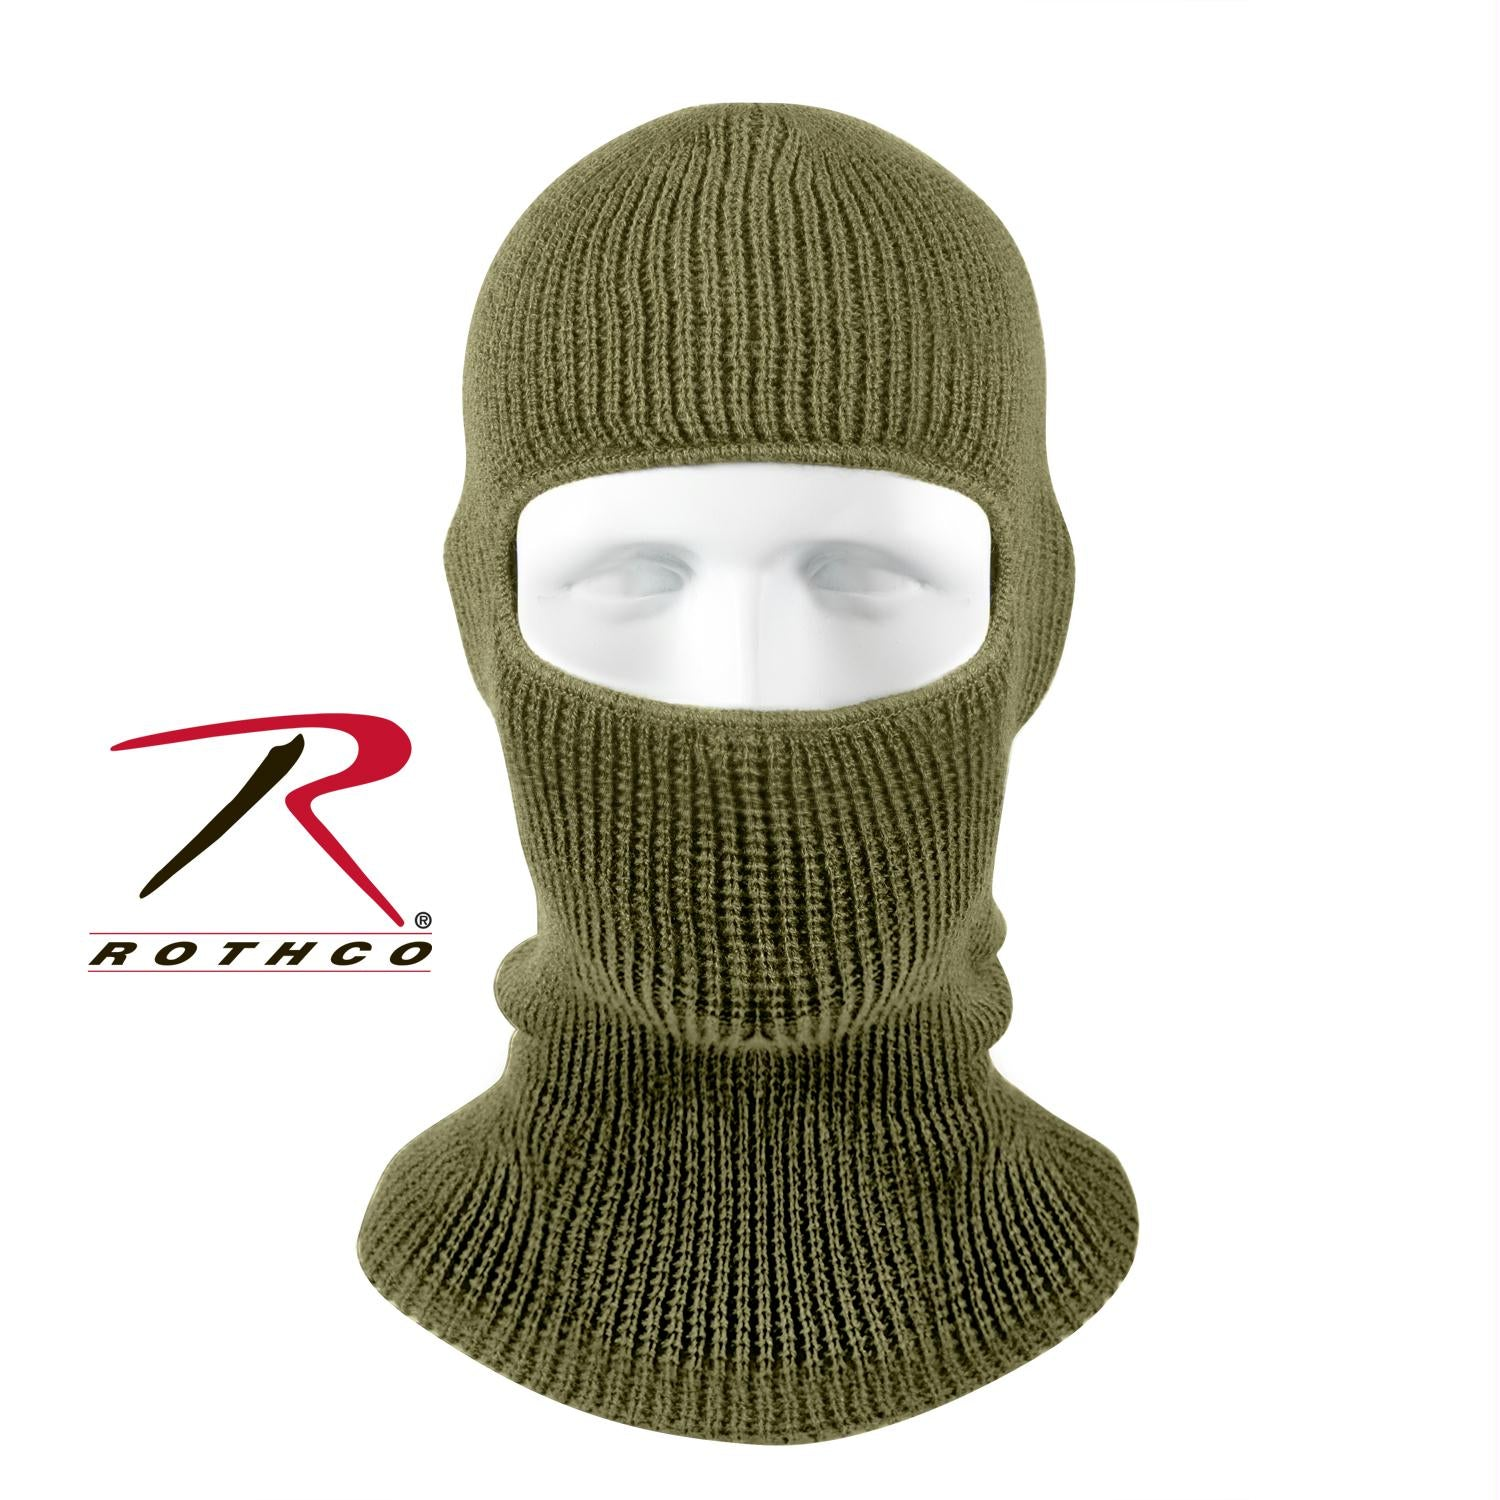 Rothco One-Hole Face Mask - Olive Drab